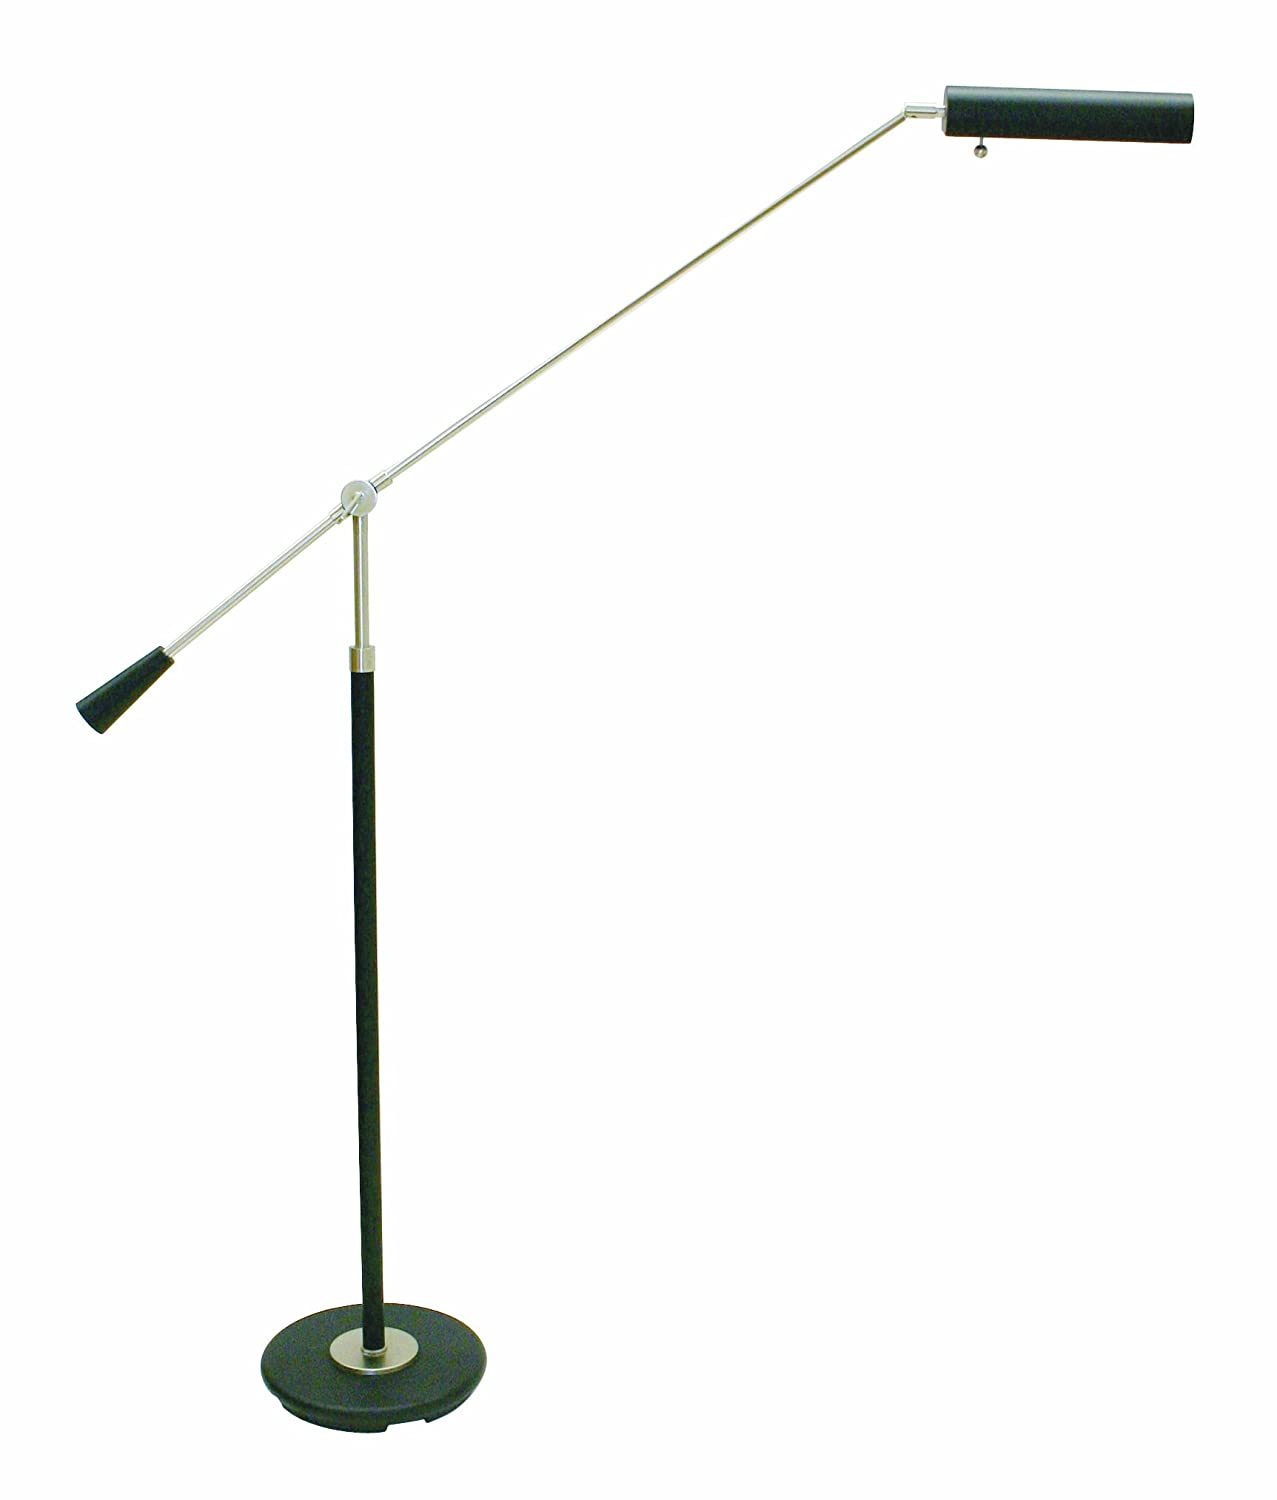 Traditional floor lamp - House Of Troy Pfl 527 Counter Balance Portable Floor Lamp Satin Nickel And Black Amazon Com